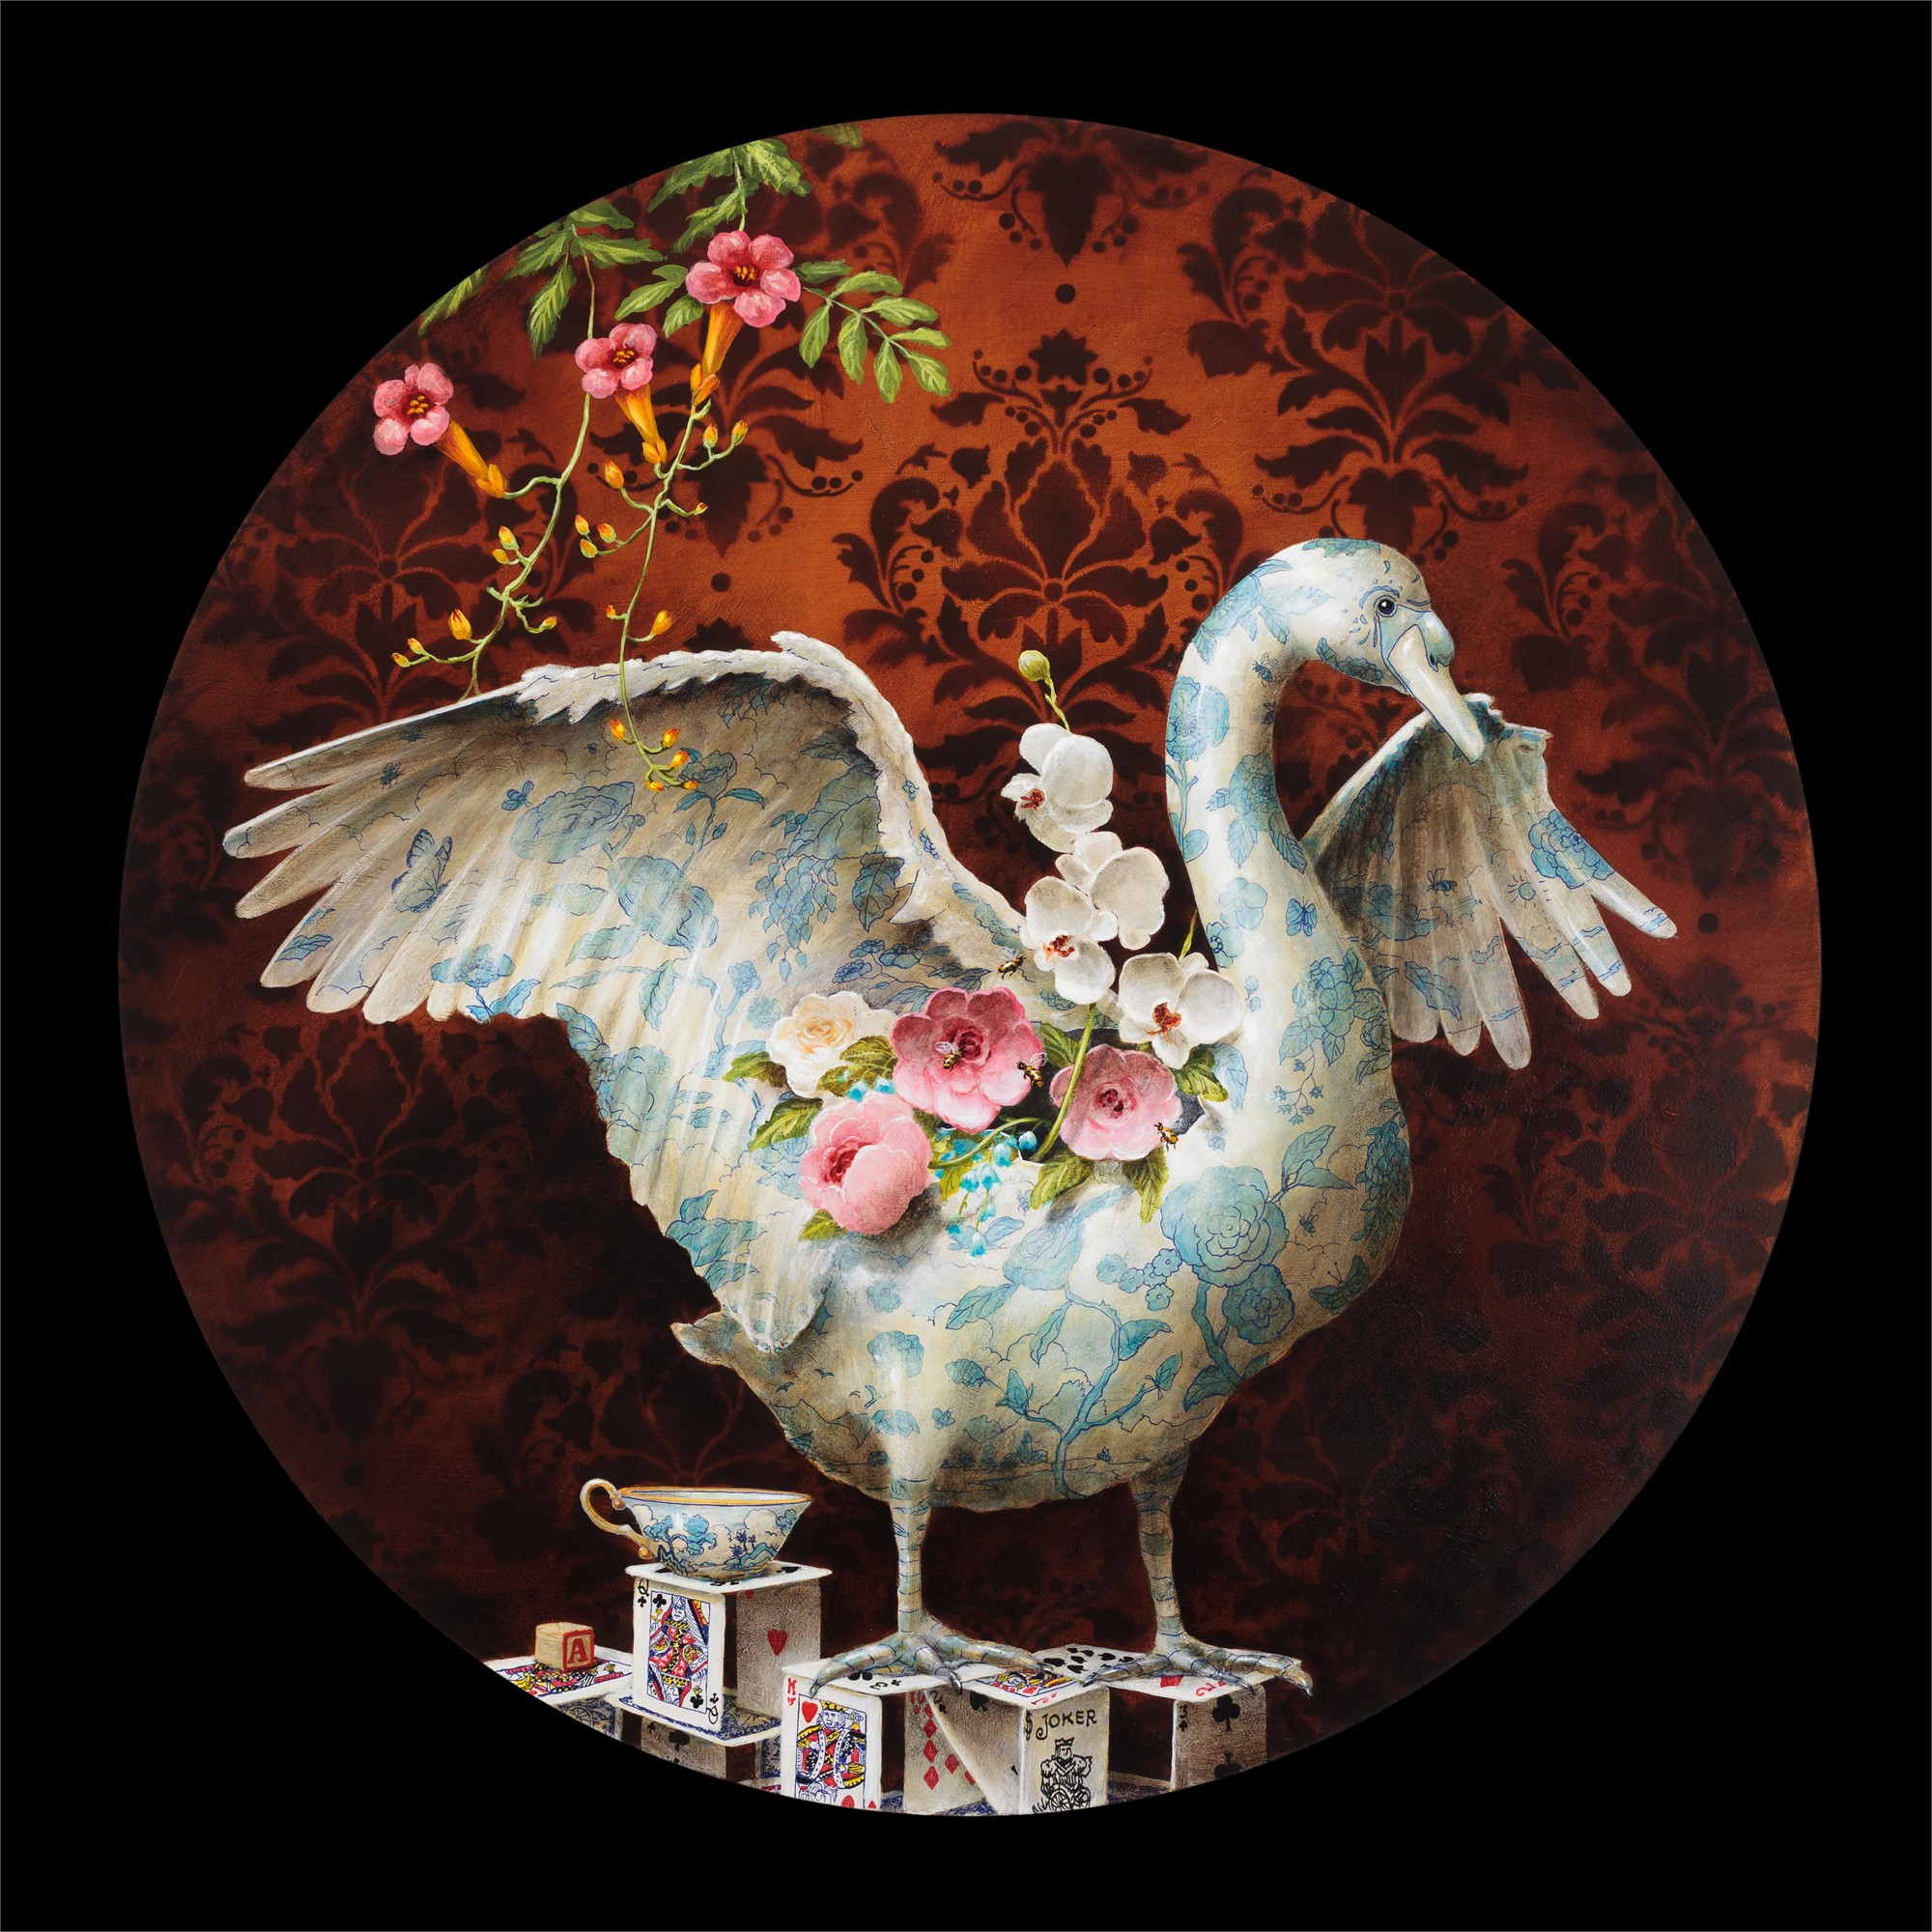 The Antiques by Kevin Sloan